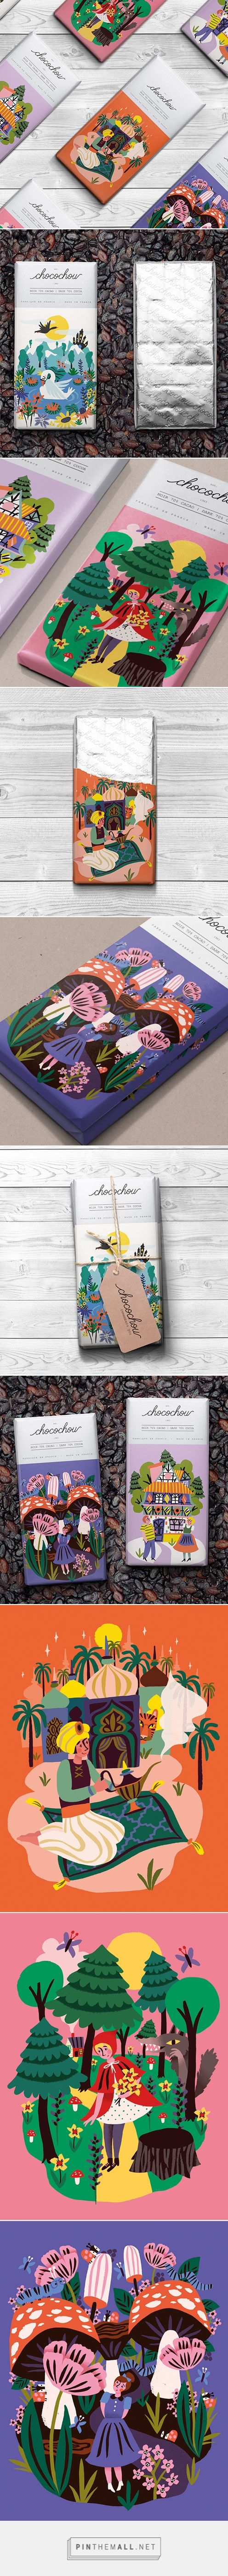 Graphic design, illustration and packaging for Fairytale Chocolate Bars / Chocochou on Behance byMarijke Buurlage Leeuwarden, Netherlands curated by Packaging Diva PD. Yummy fantasy chocolate.